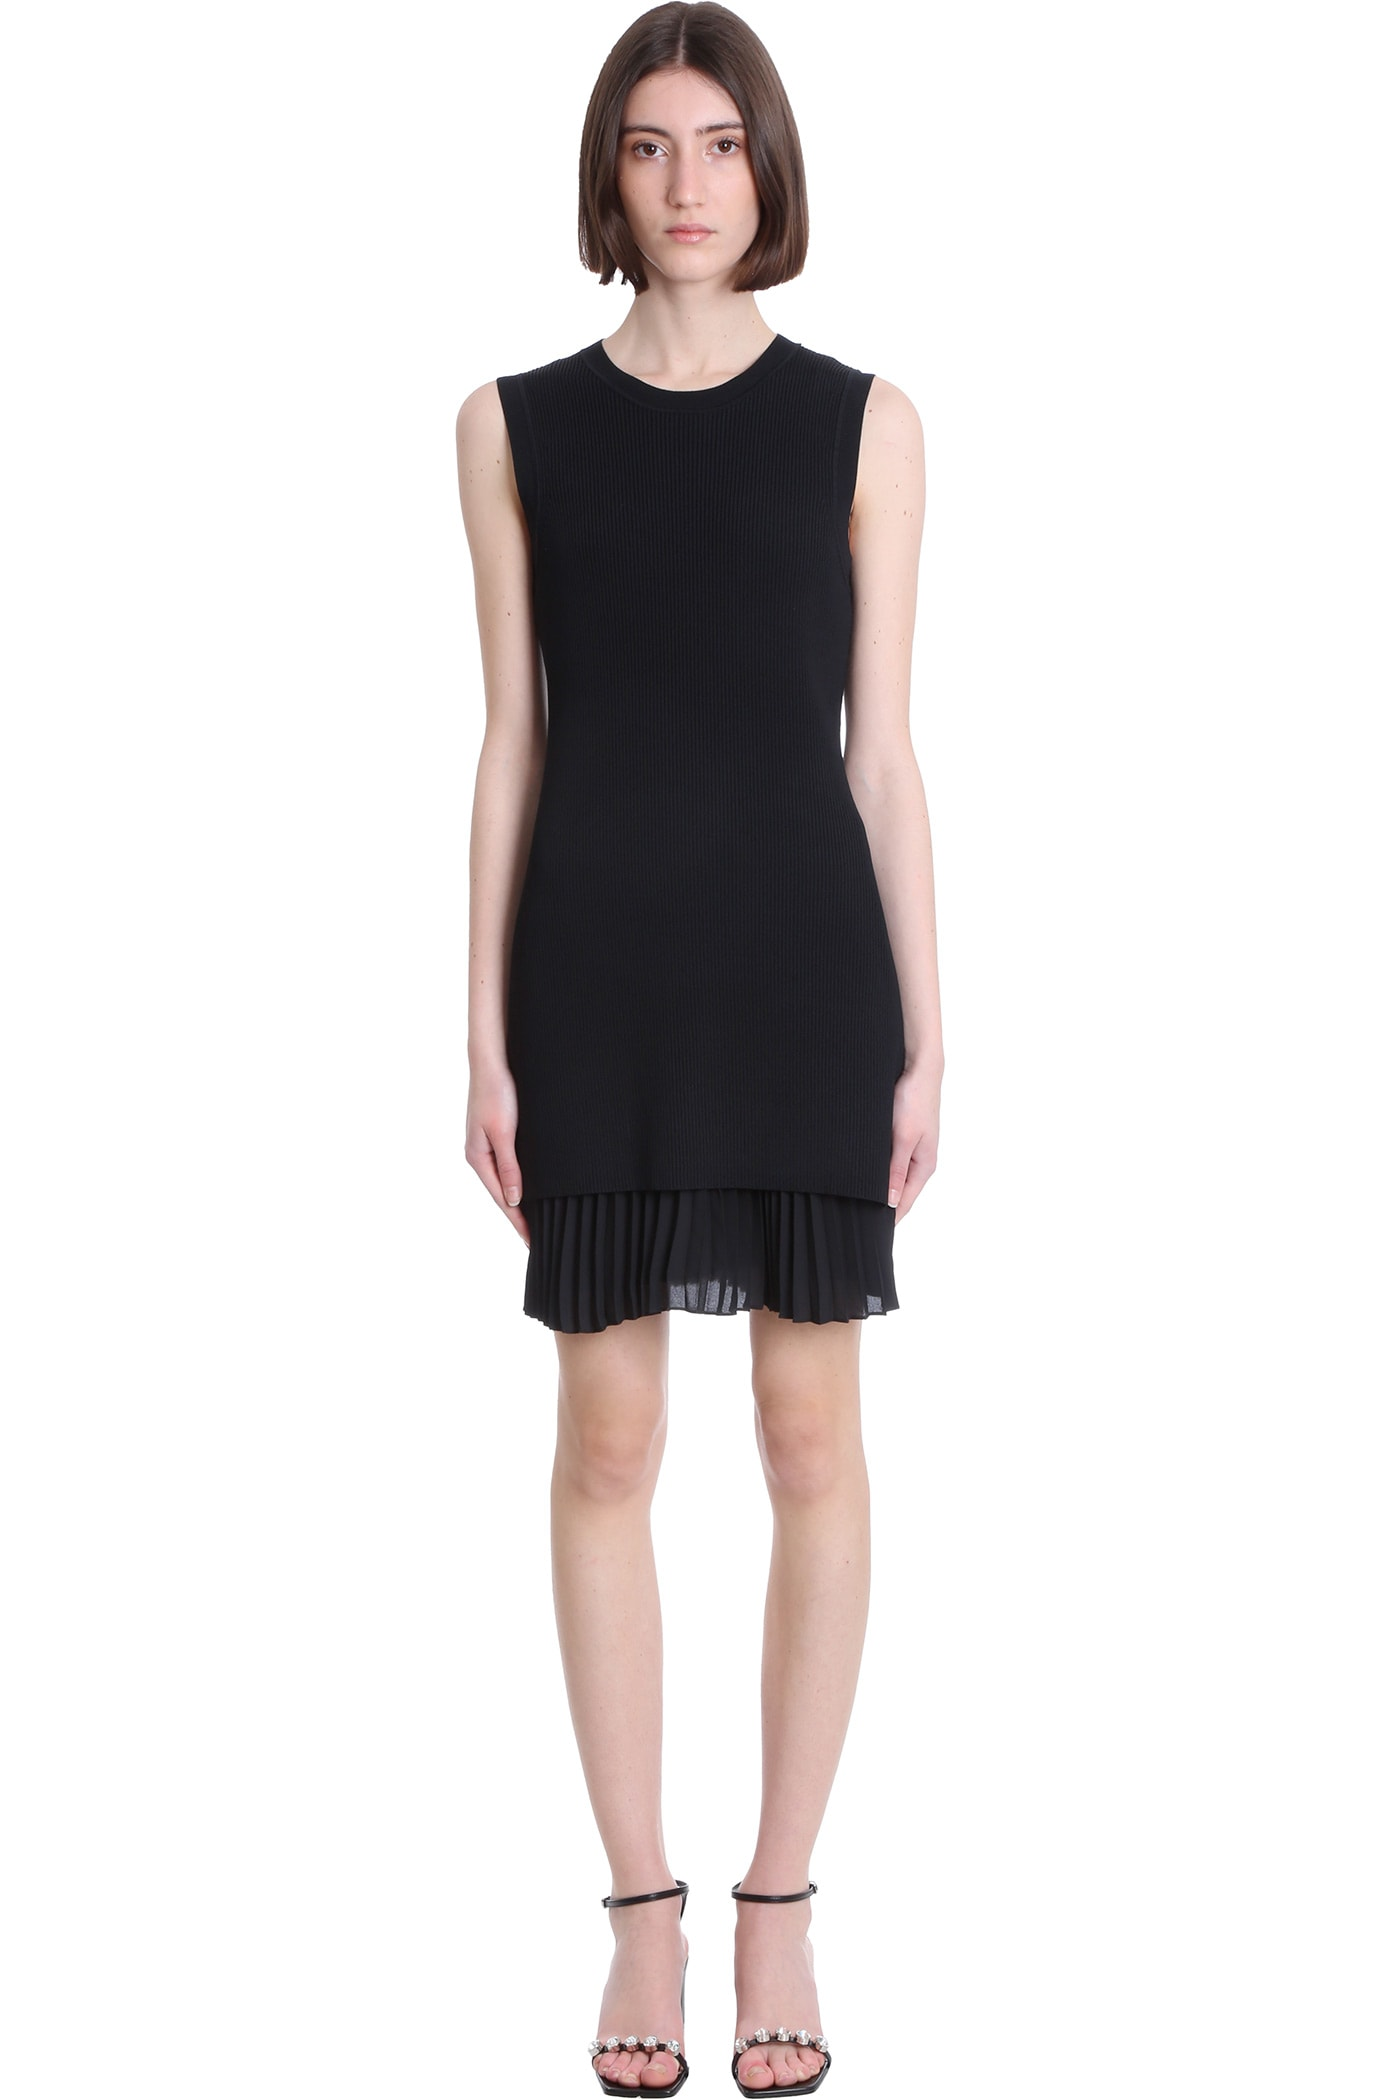 Theory Dress In Black Polyester